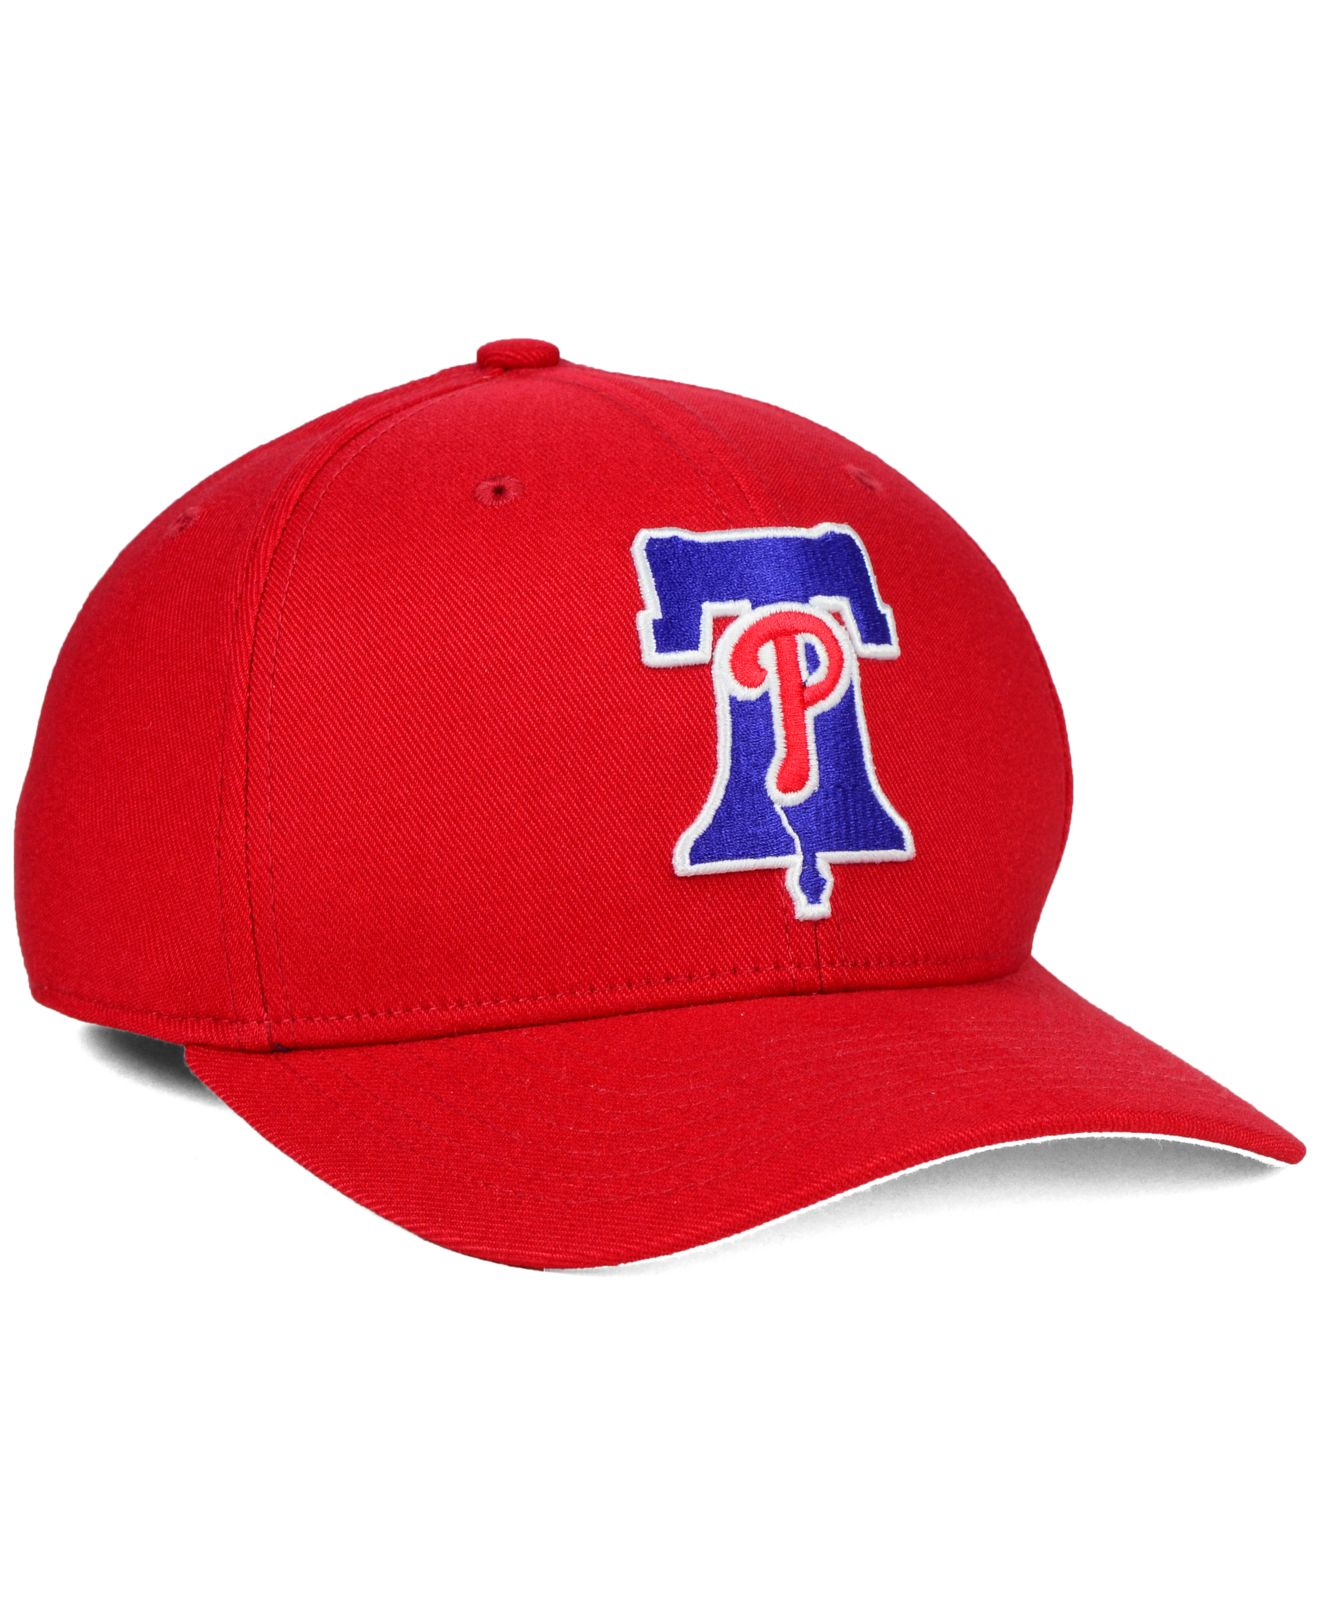 f1d0888f9 ... authentic canada philadelphia phillies nike mlb string bill snapback cap  05403 20b50 coupon for lyst nike